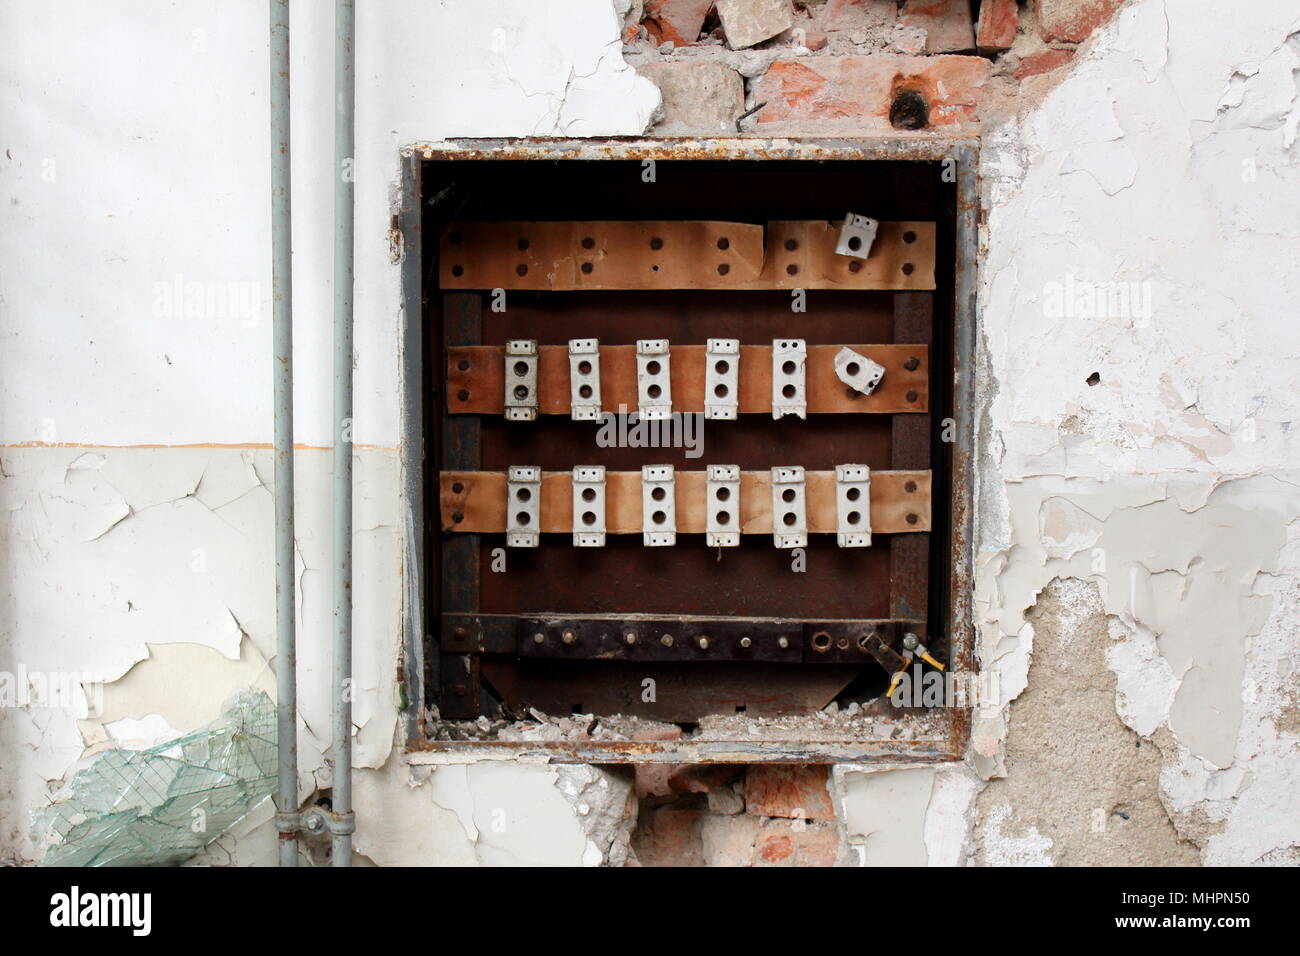 hight resolution of destroyed rusted old fuse box surrounded with crumbling wall visible bricks radiator pipes and